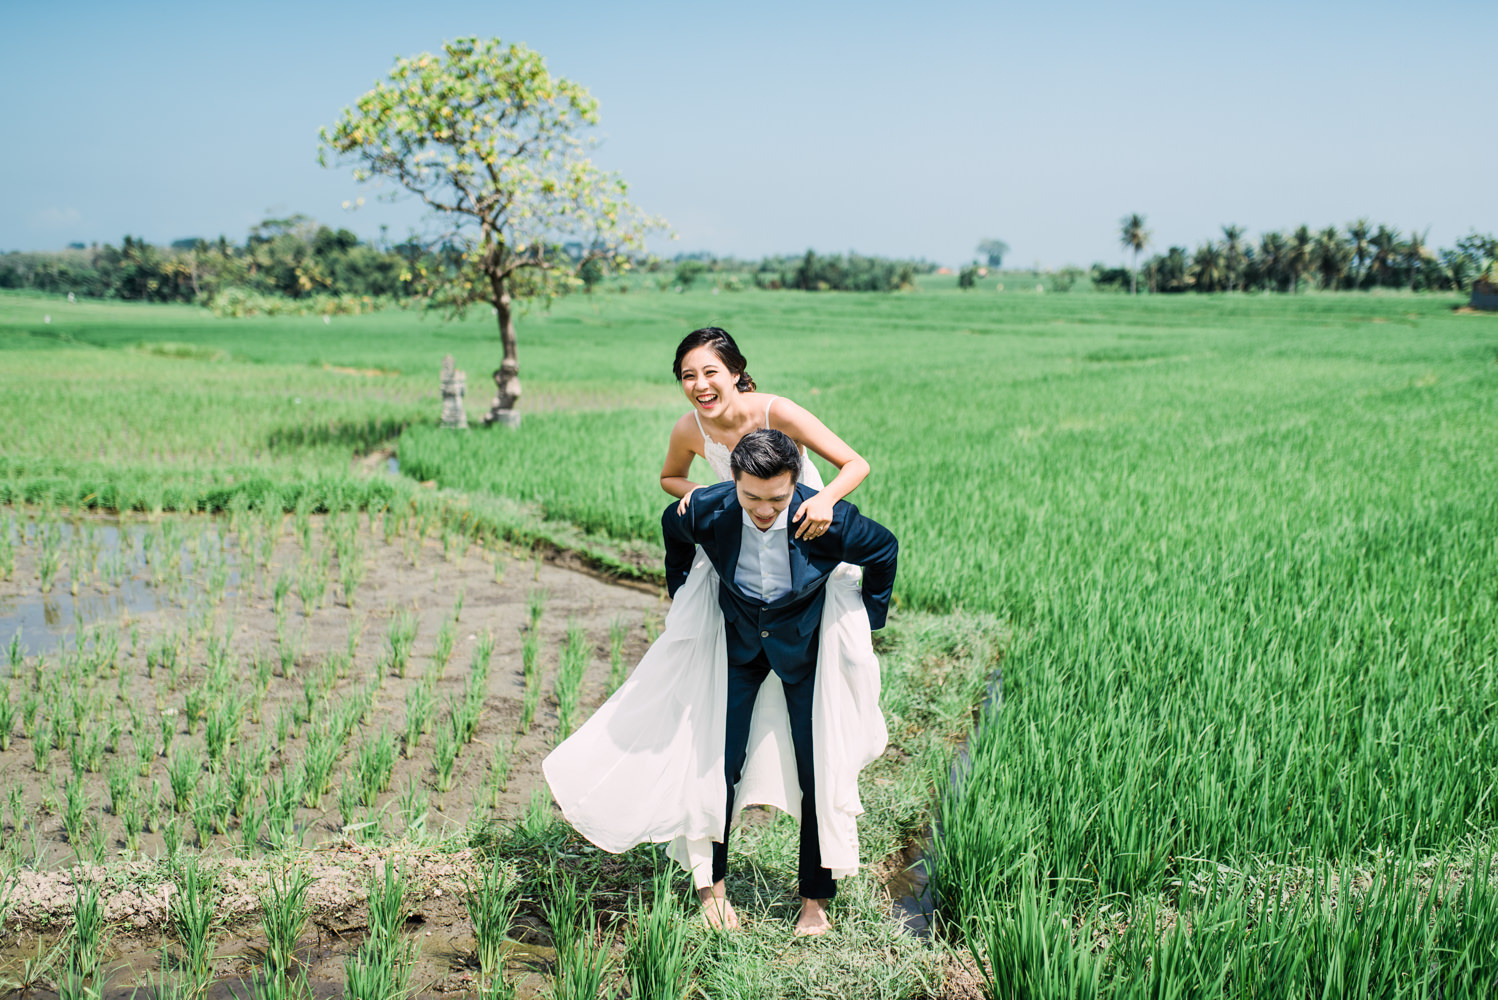 The couple were having fun in Seseh Rice Field during their engagement session